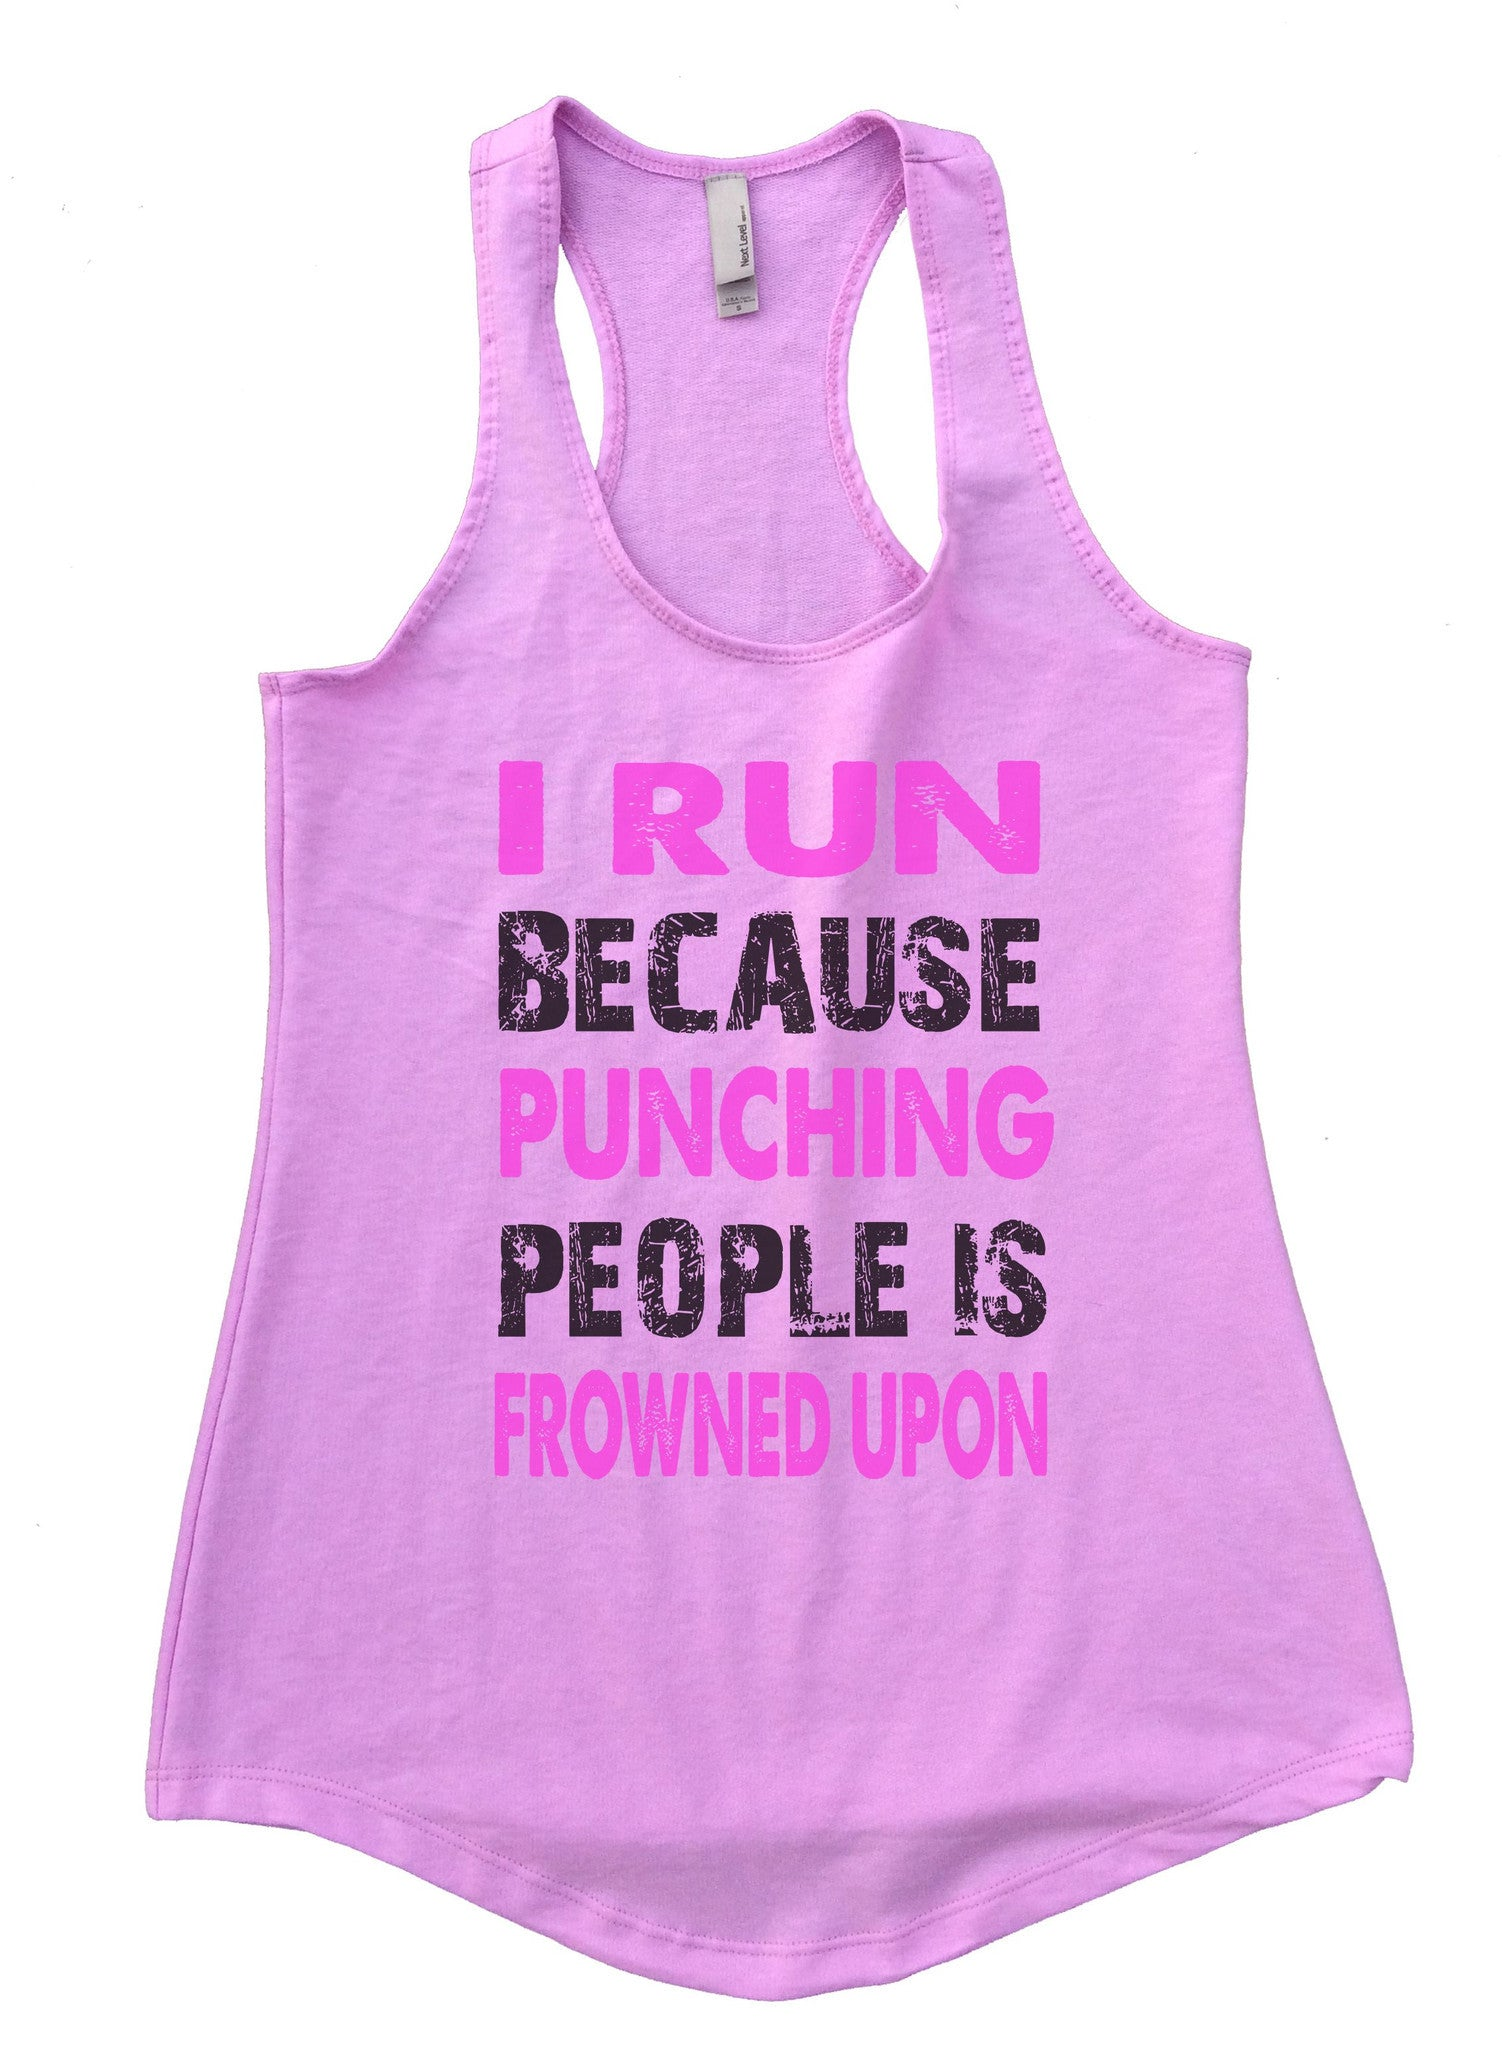 I Run Because Punching People Is Frowned Upon Womens Workout Tank Top F708 - Funny Shirts Tank Tops Burnouts and Triblends  - 4